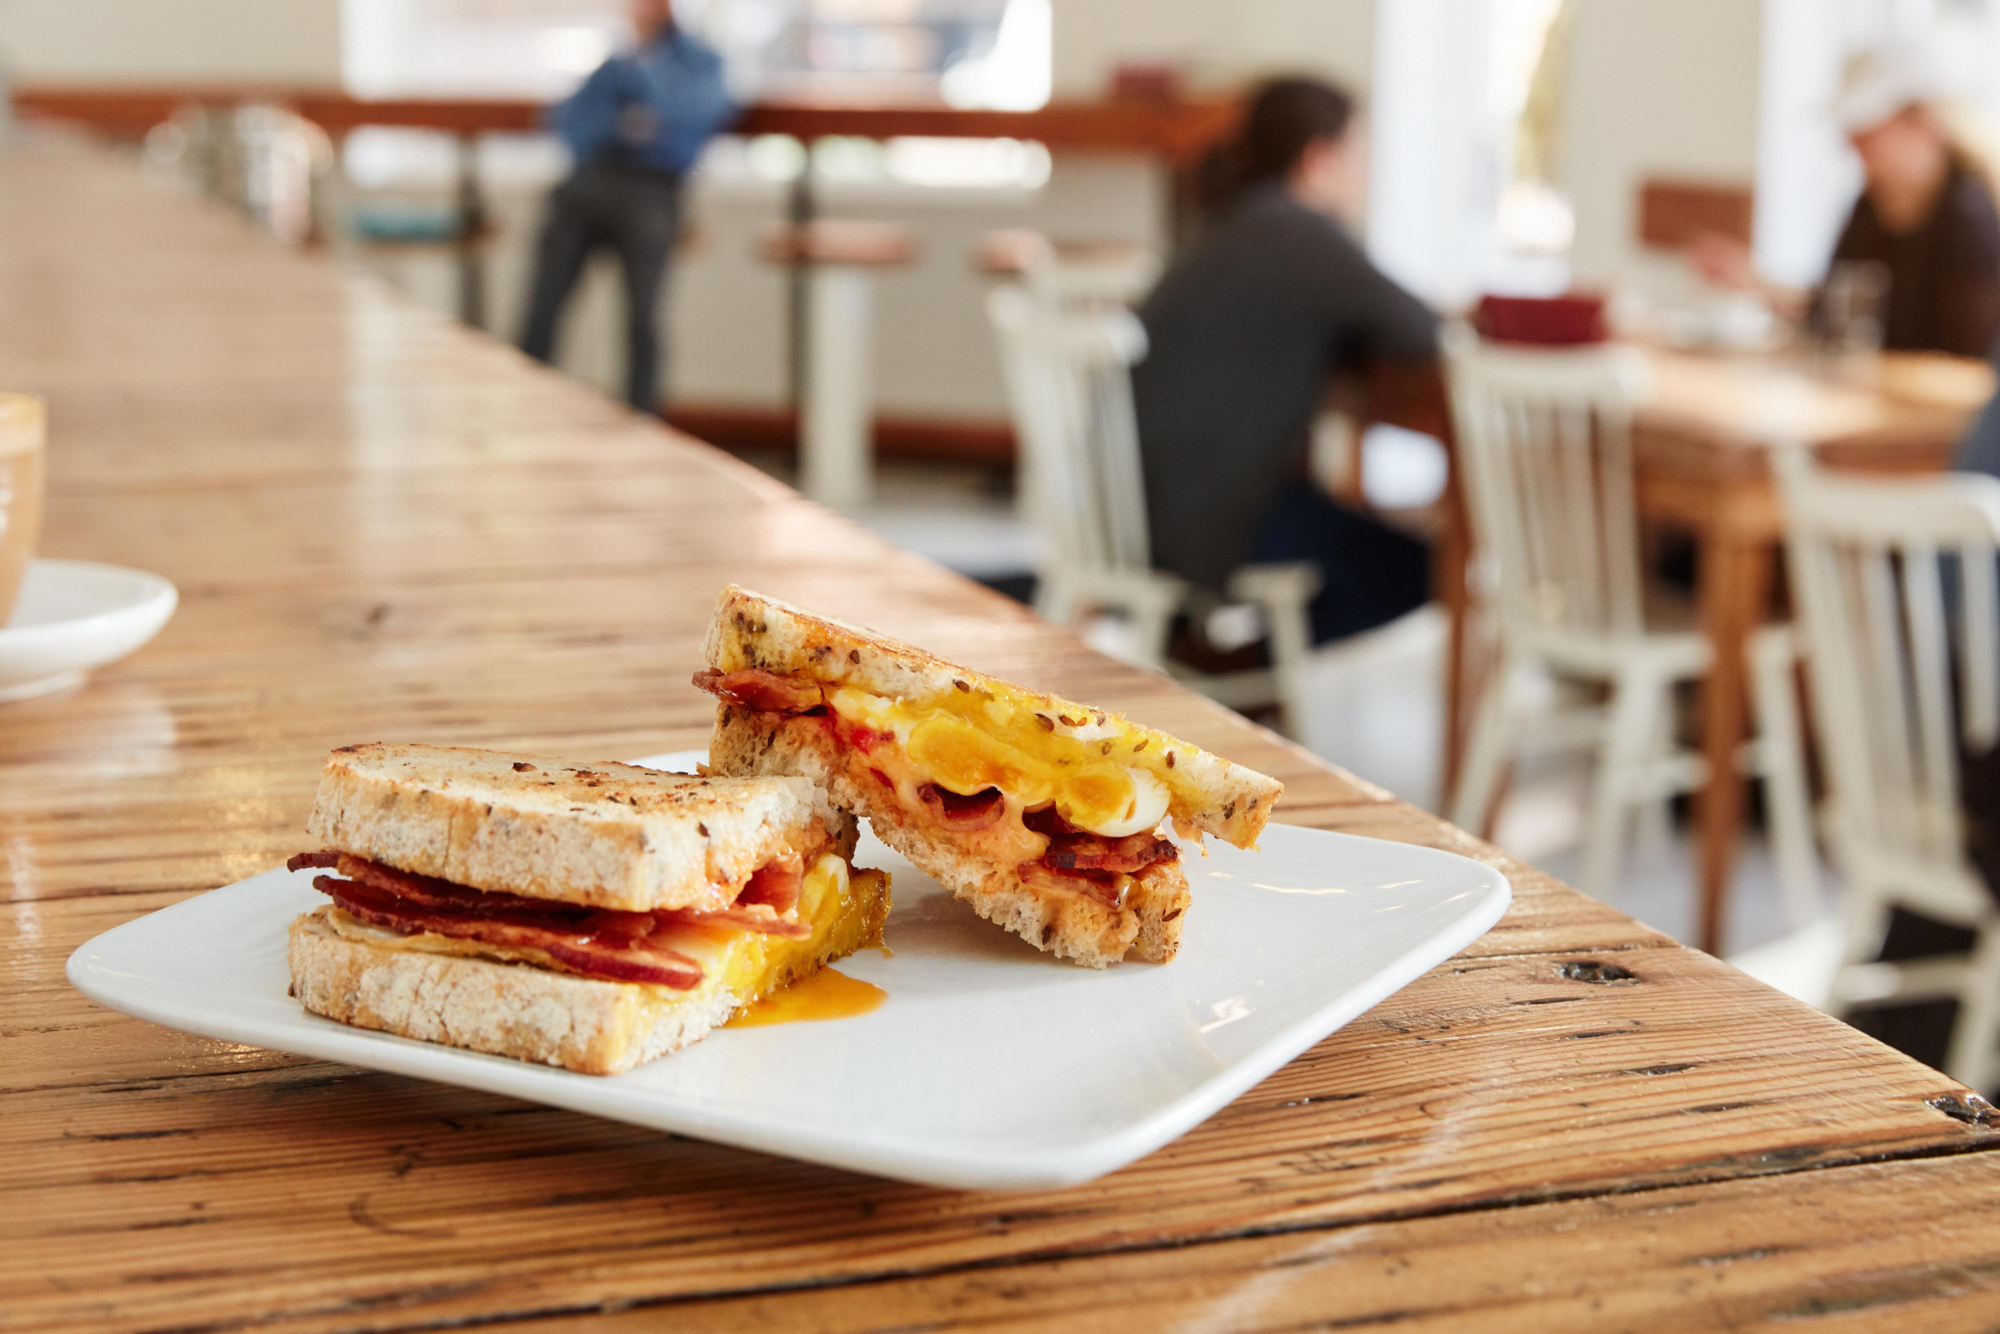 Pimento Cheese Breakfast Sandwich from Cheapside Cafe in Ohio